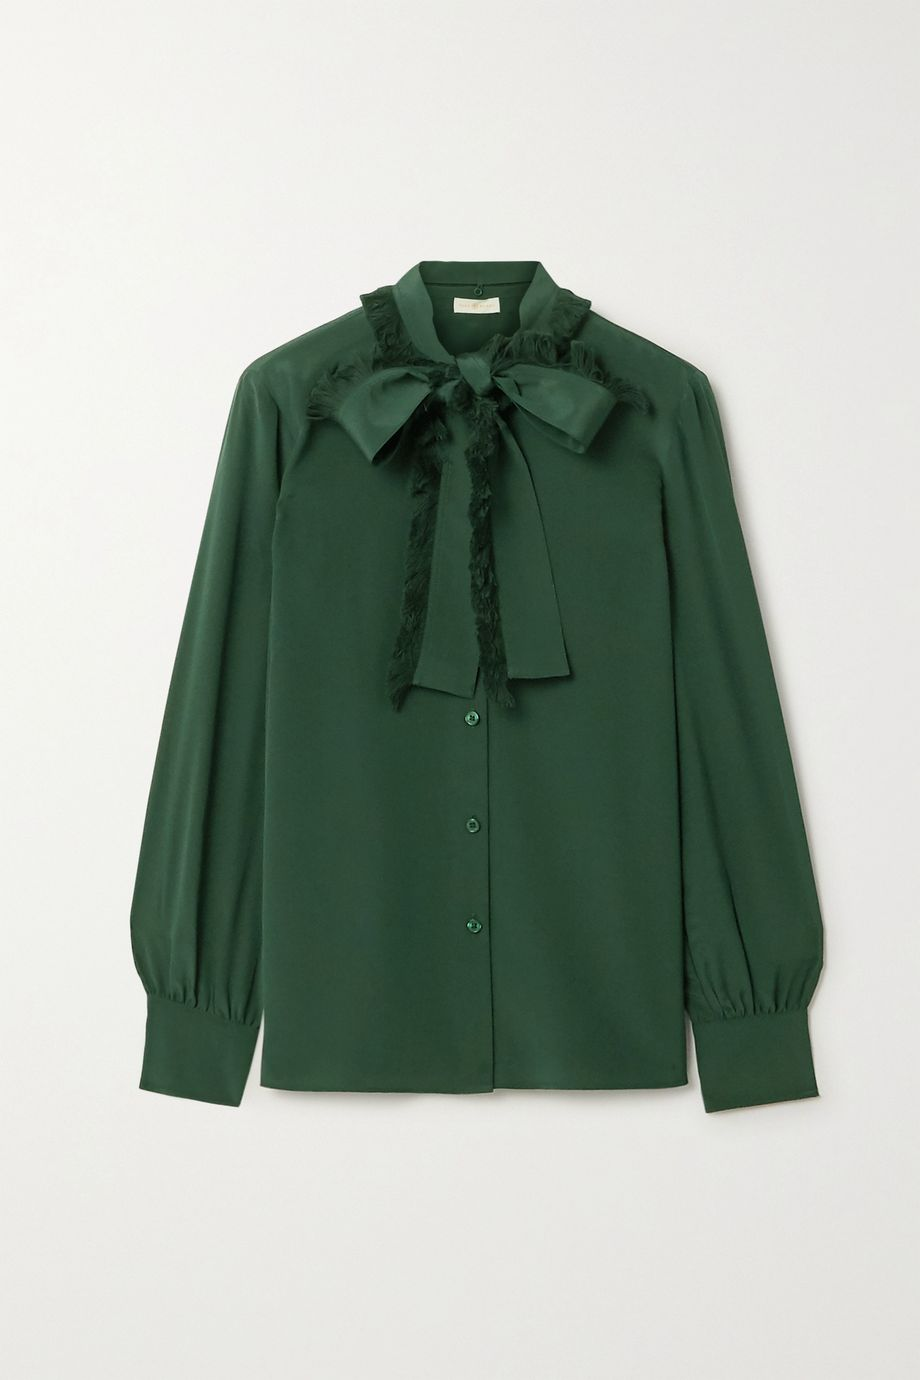 Tory Burch Pussy-bow fringed silk crepe de chine shirt